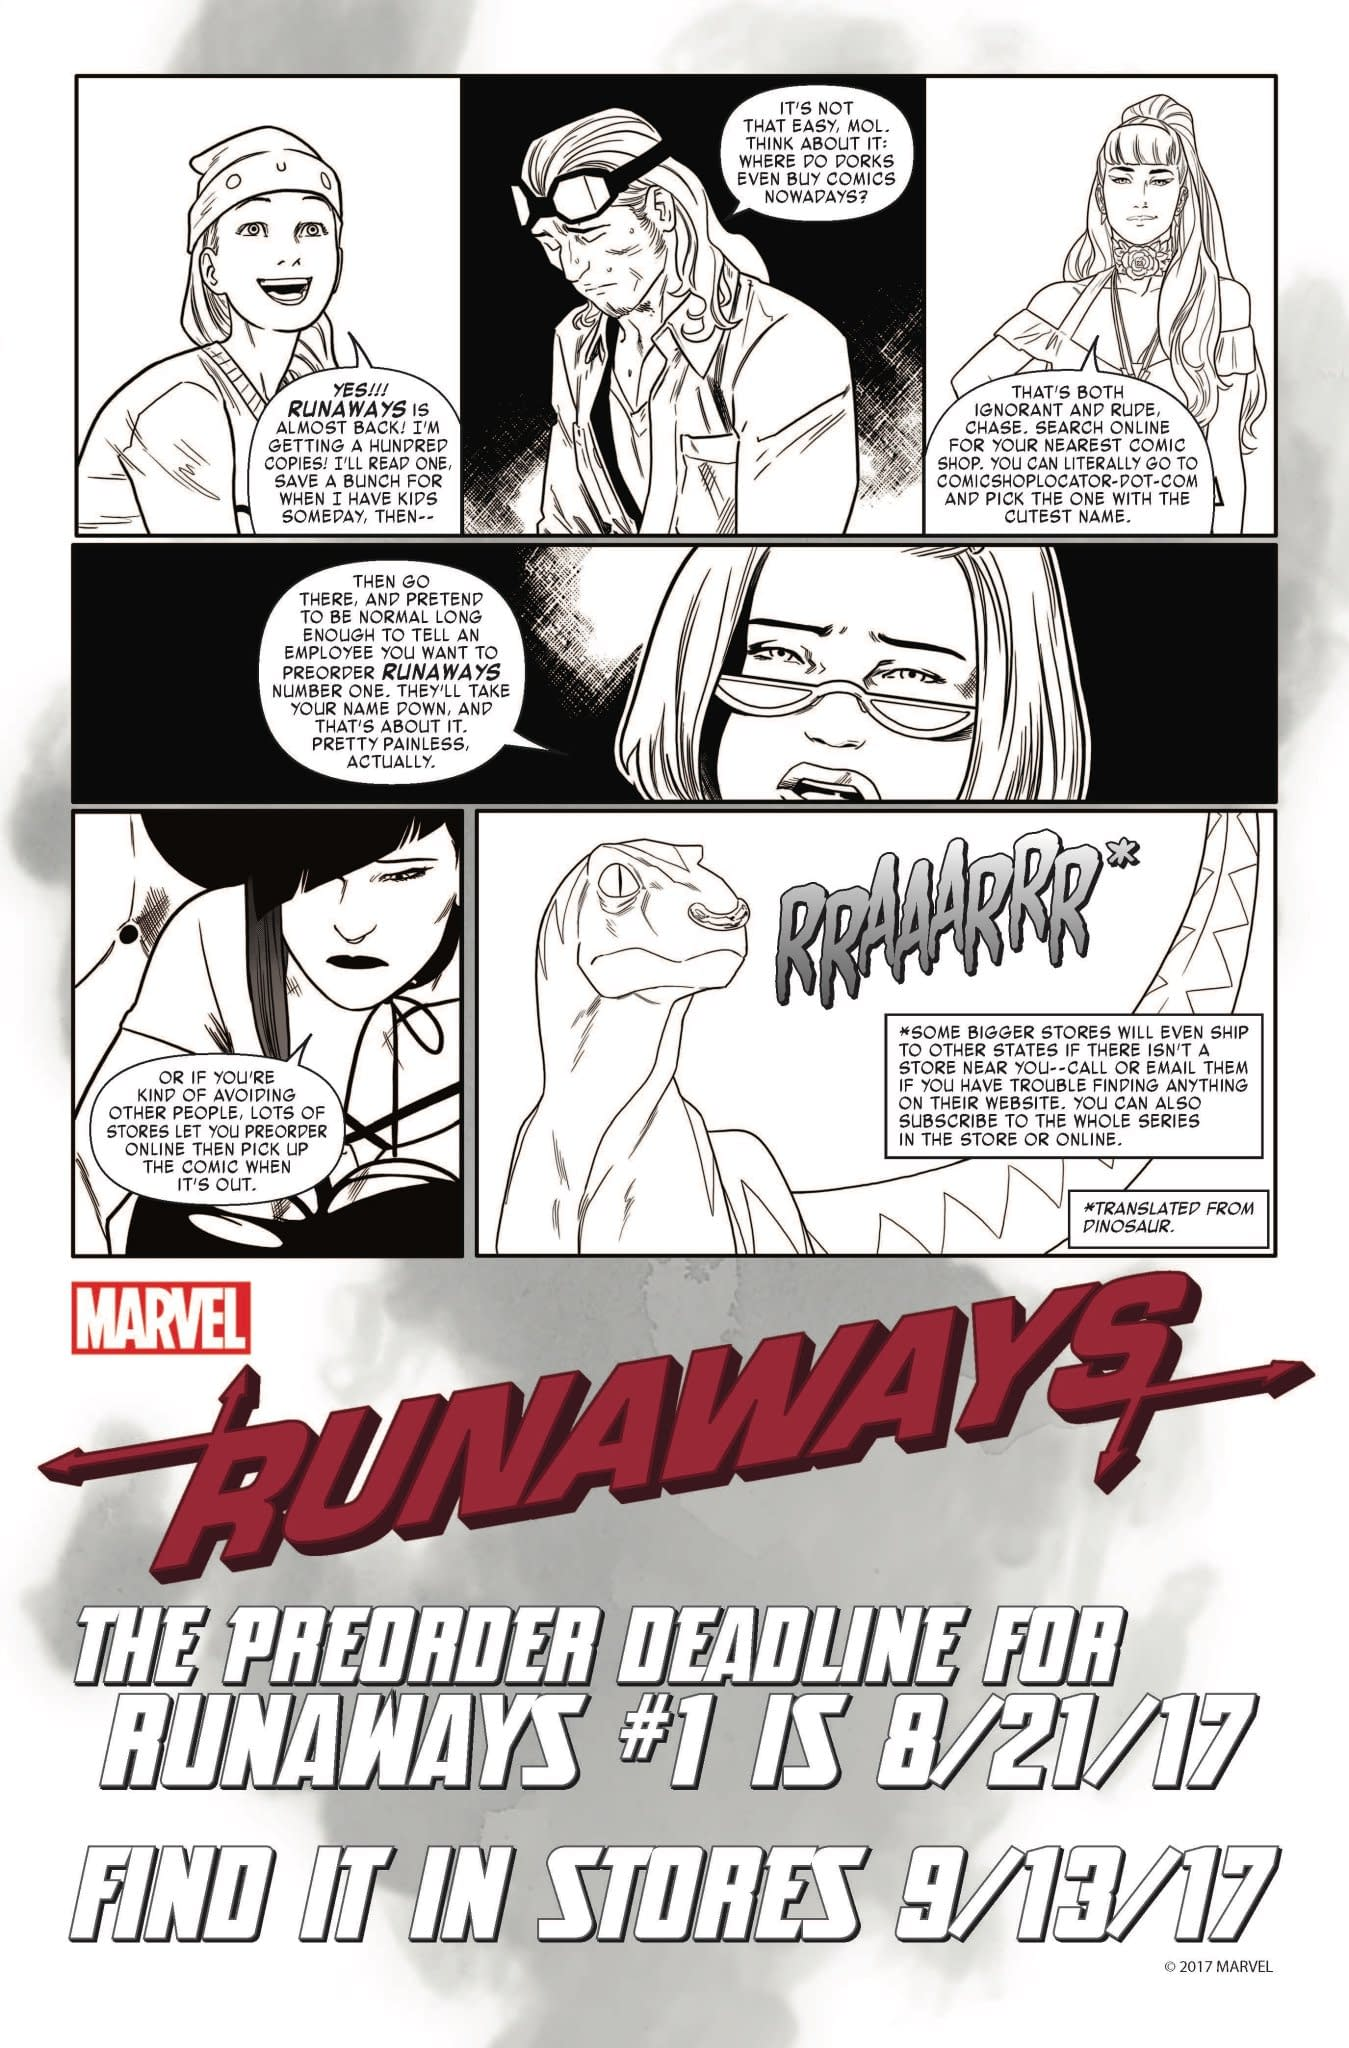 Marvel's Runaways Teach You How To Preorder Comics, Your Sacred Responsibility As A Comic Book Reader